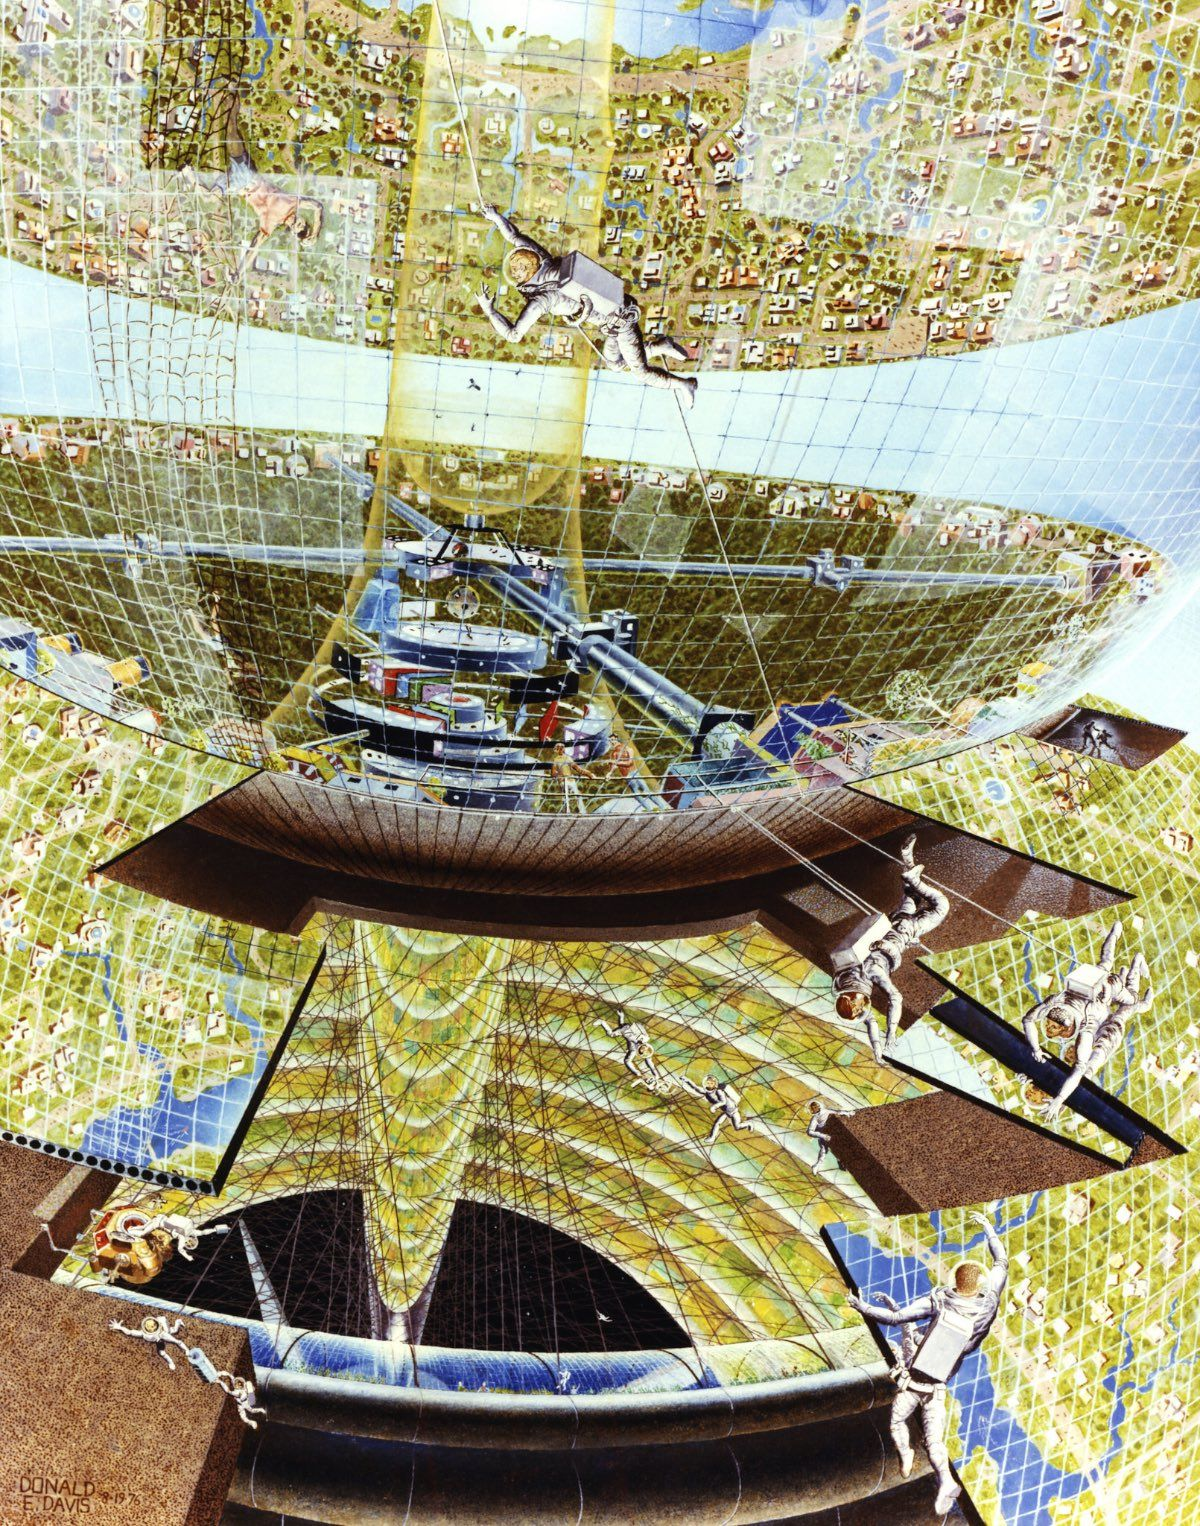 Bernal Construction. Construction crew at work on the colony. Art work: Don Davis. Credit: NASA Ames Research Center. NASA ID AC76-1288